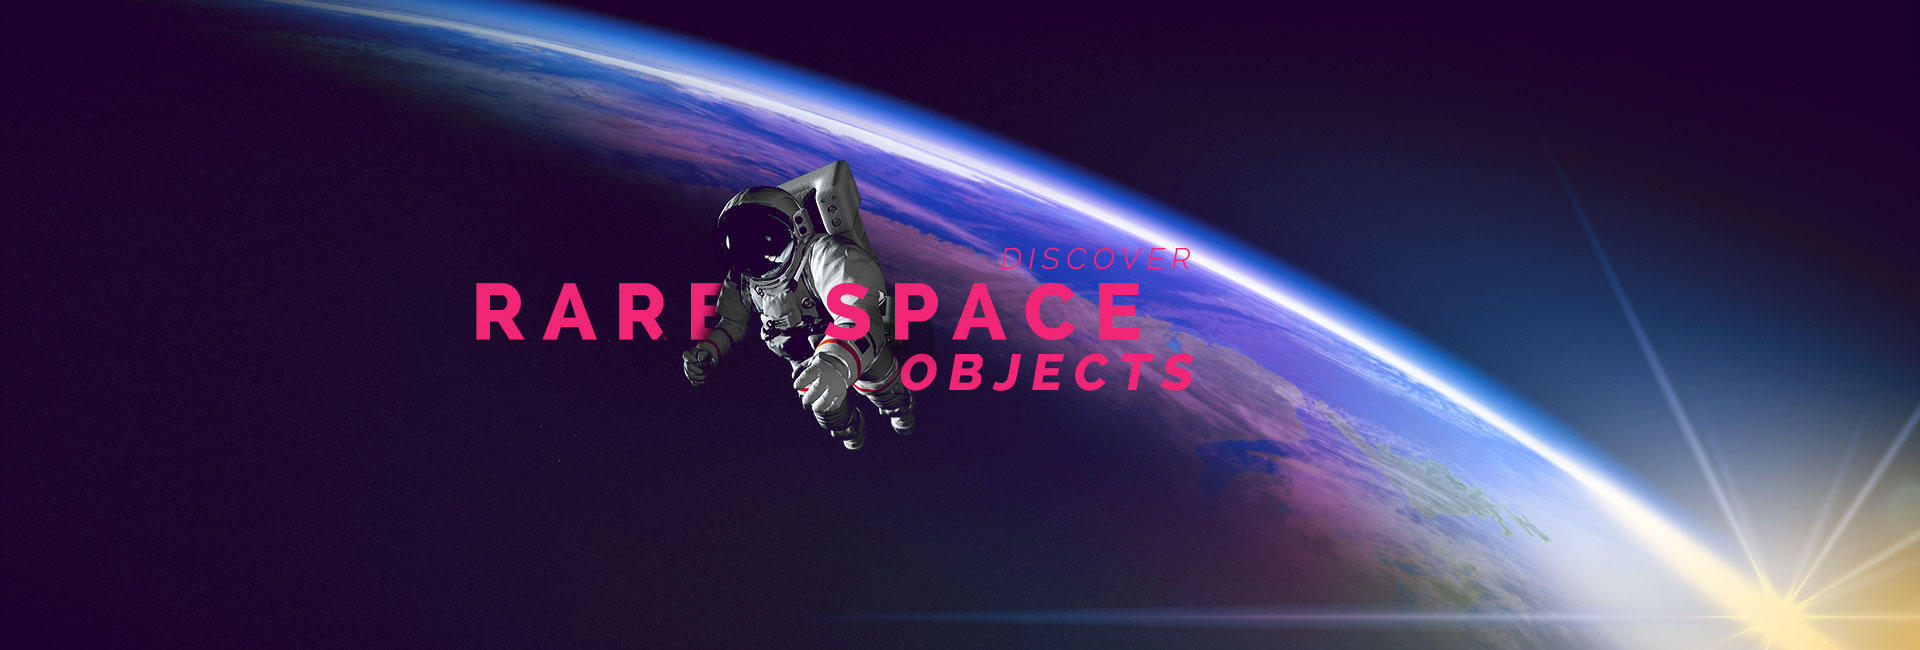 Discover rare space objects!